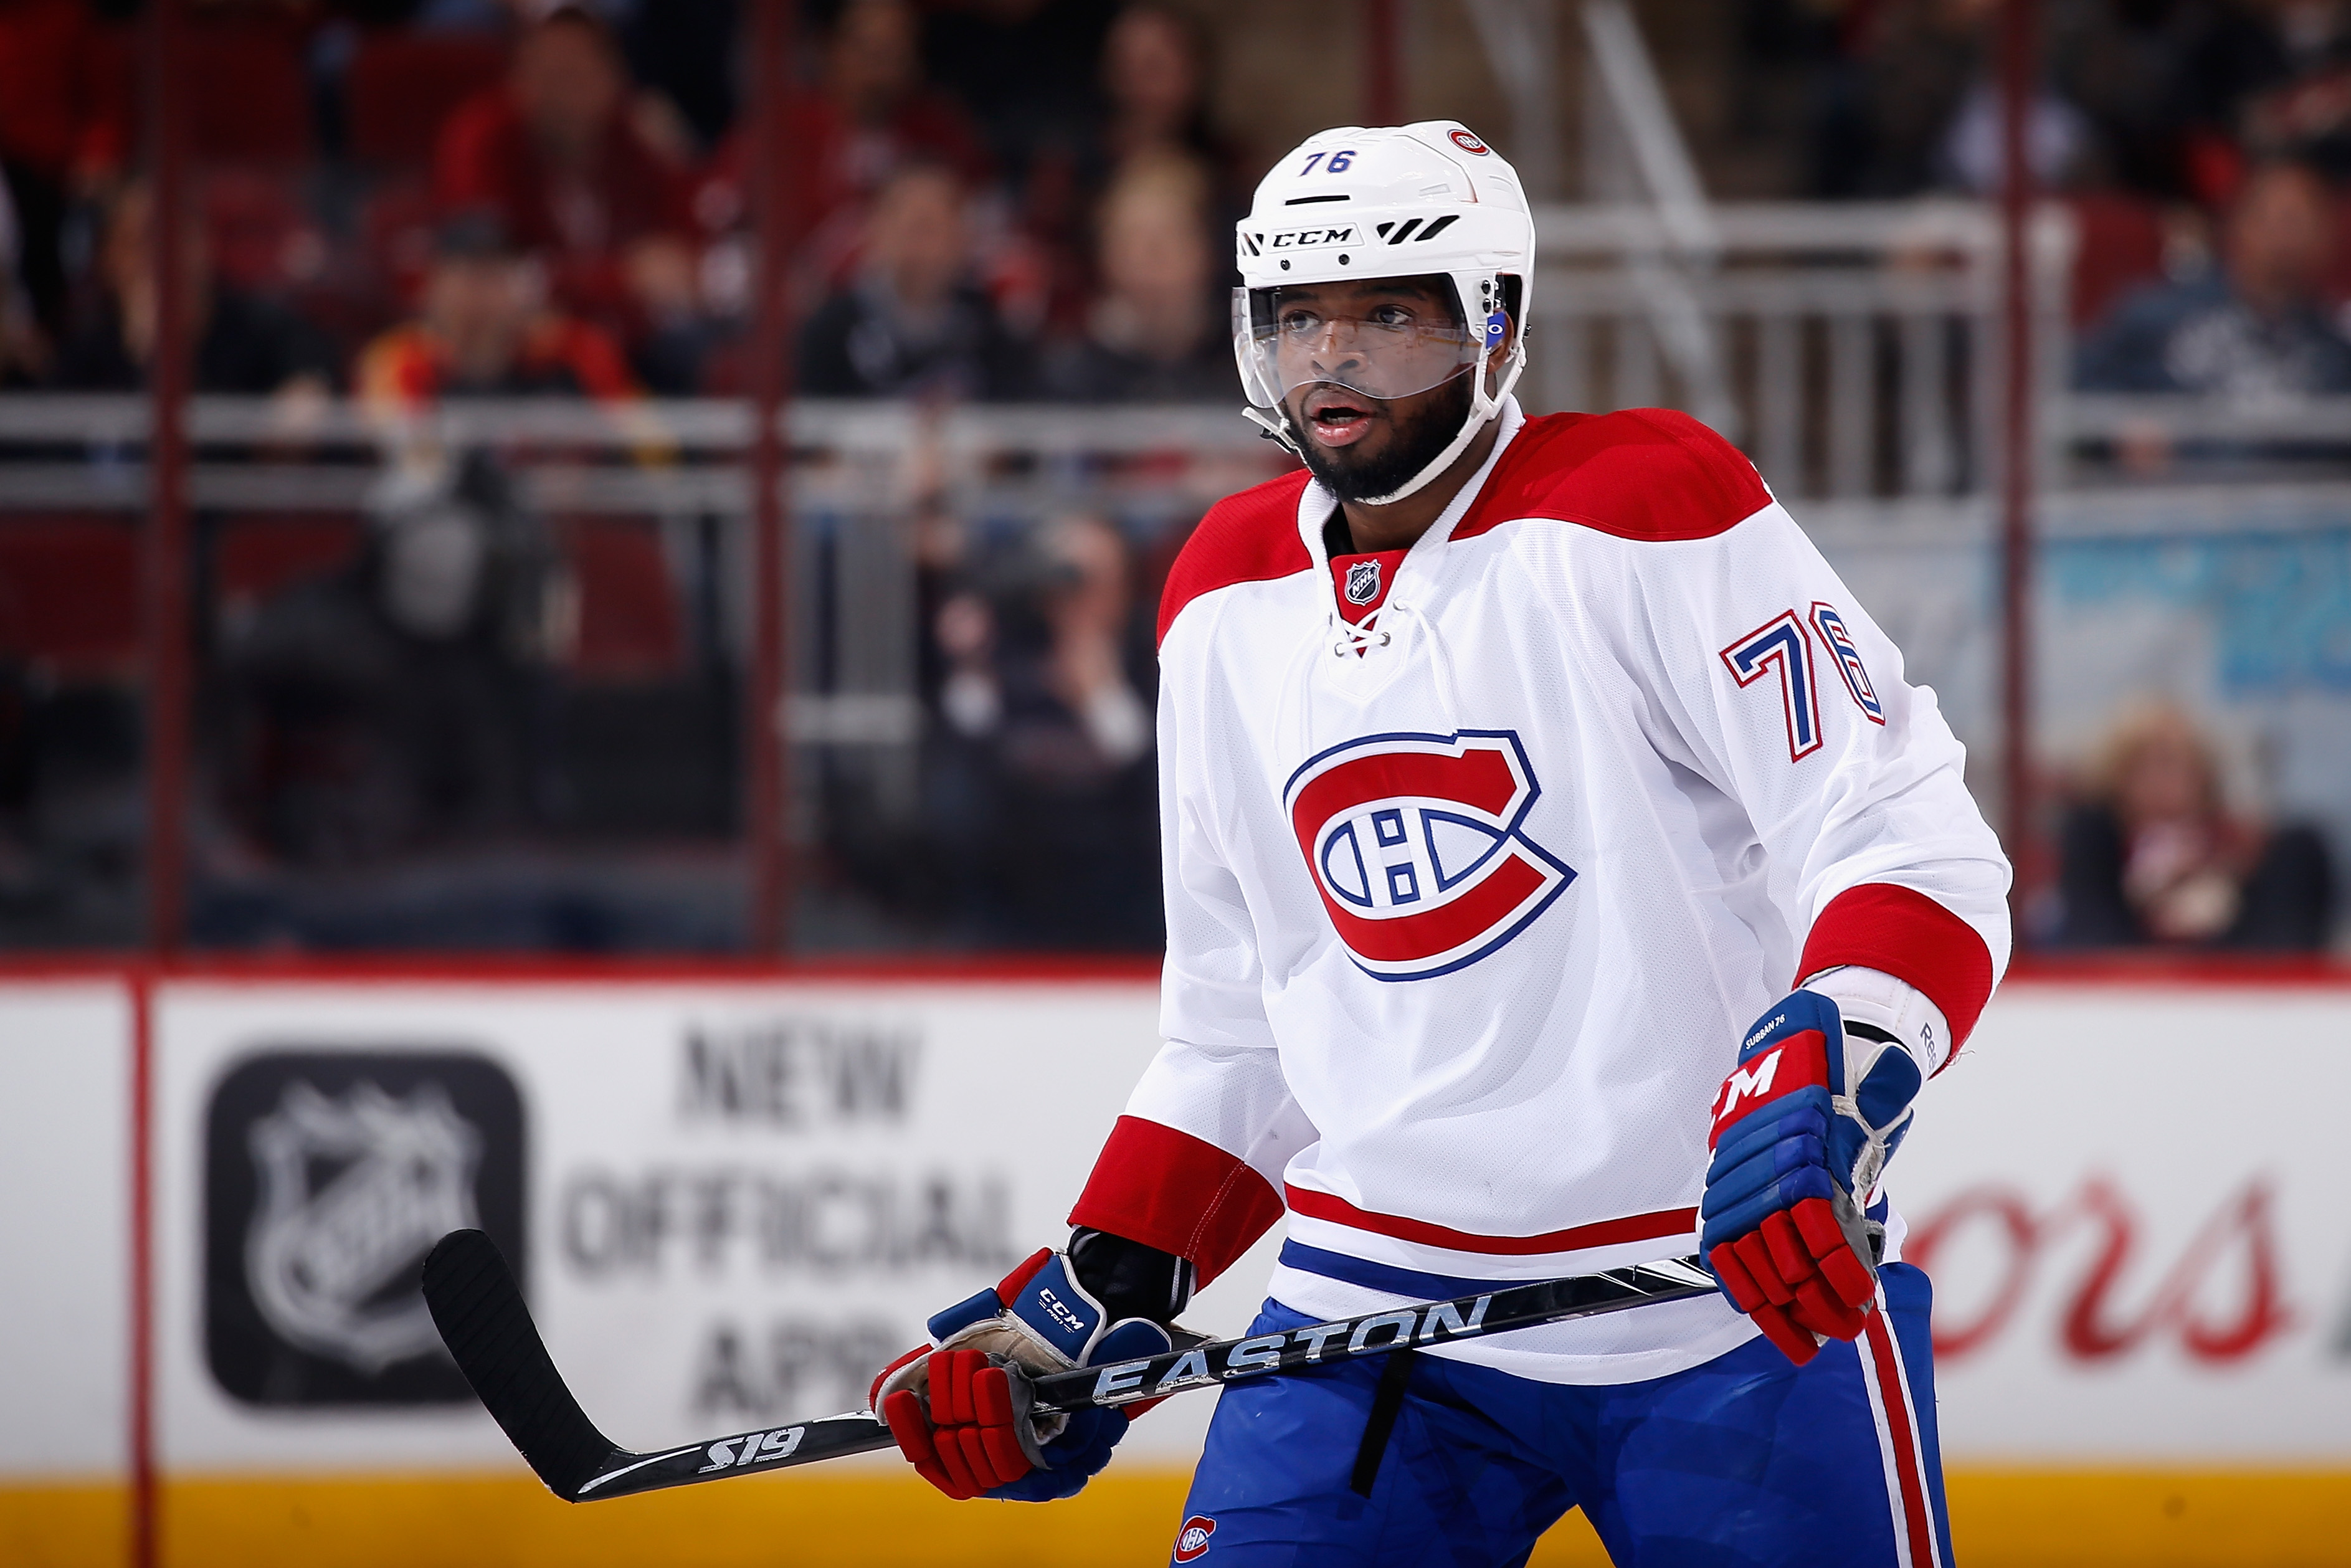 GLENDALE, AZ - FEBRUARY 15:  P.K. Subban #76 of the Montreal Canadiens during the NHL game against the Arizona Coyotes at Gila River Arena on February 15, 2016 in Glendale, Arizona.  The Coyotes defeated the Canadiens 6-2.  (Photo by Christian Petersen/Getty Images)